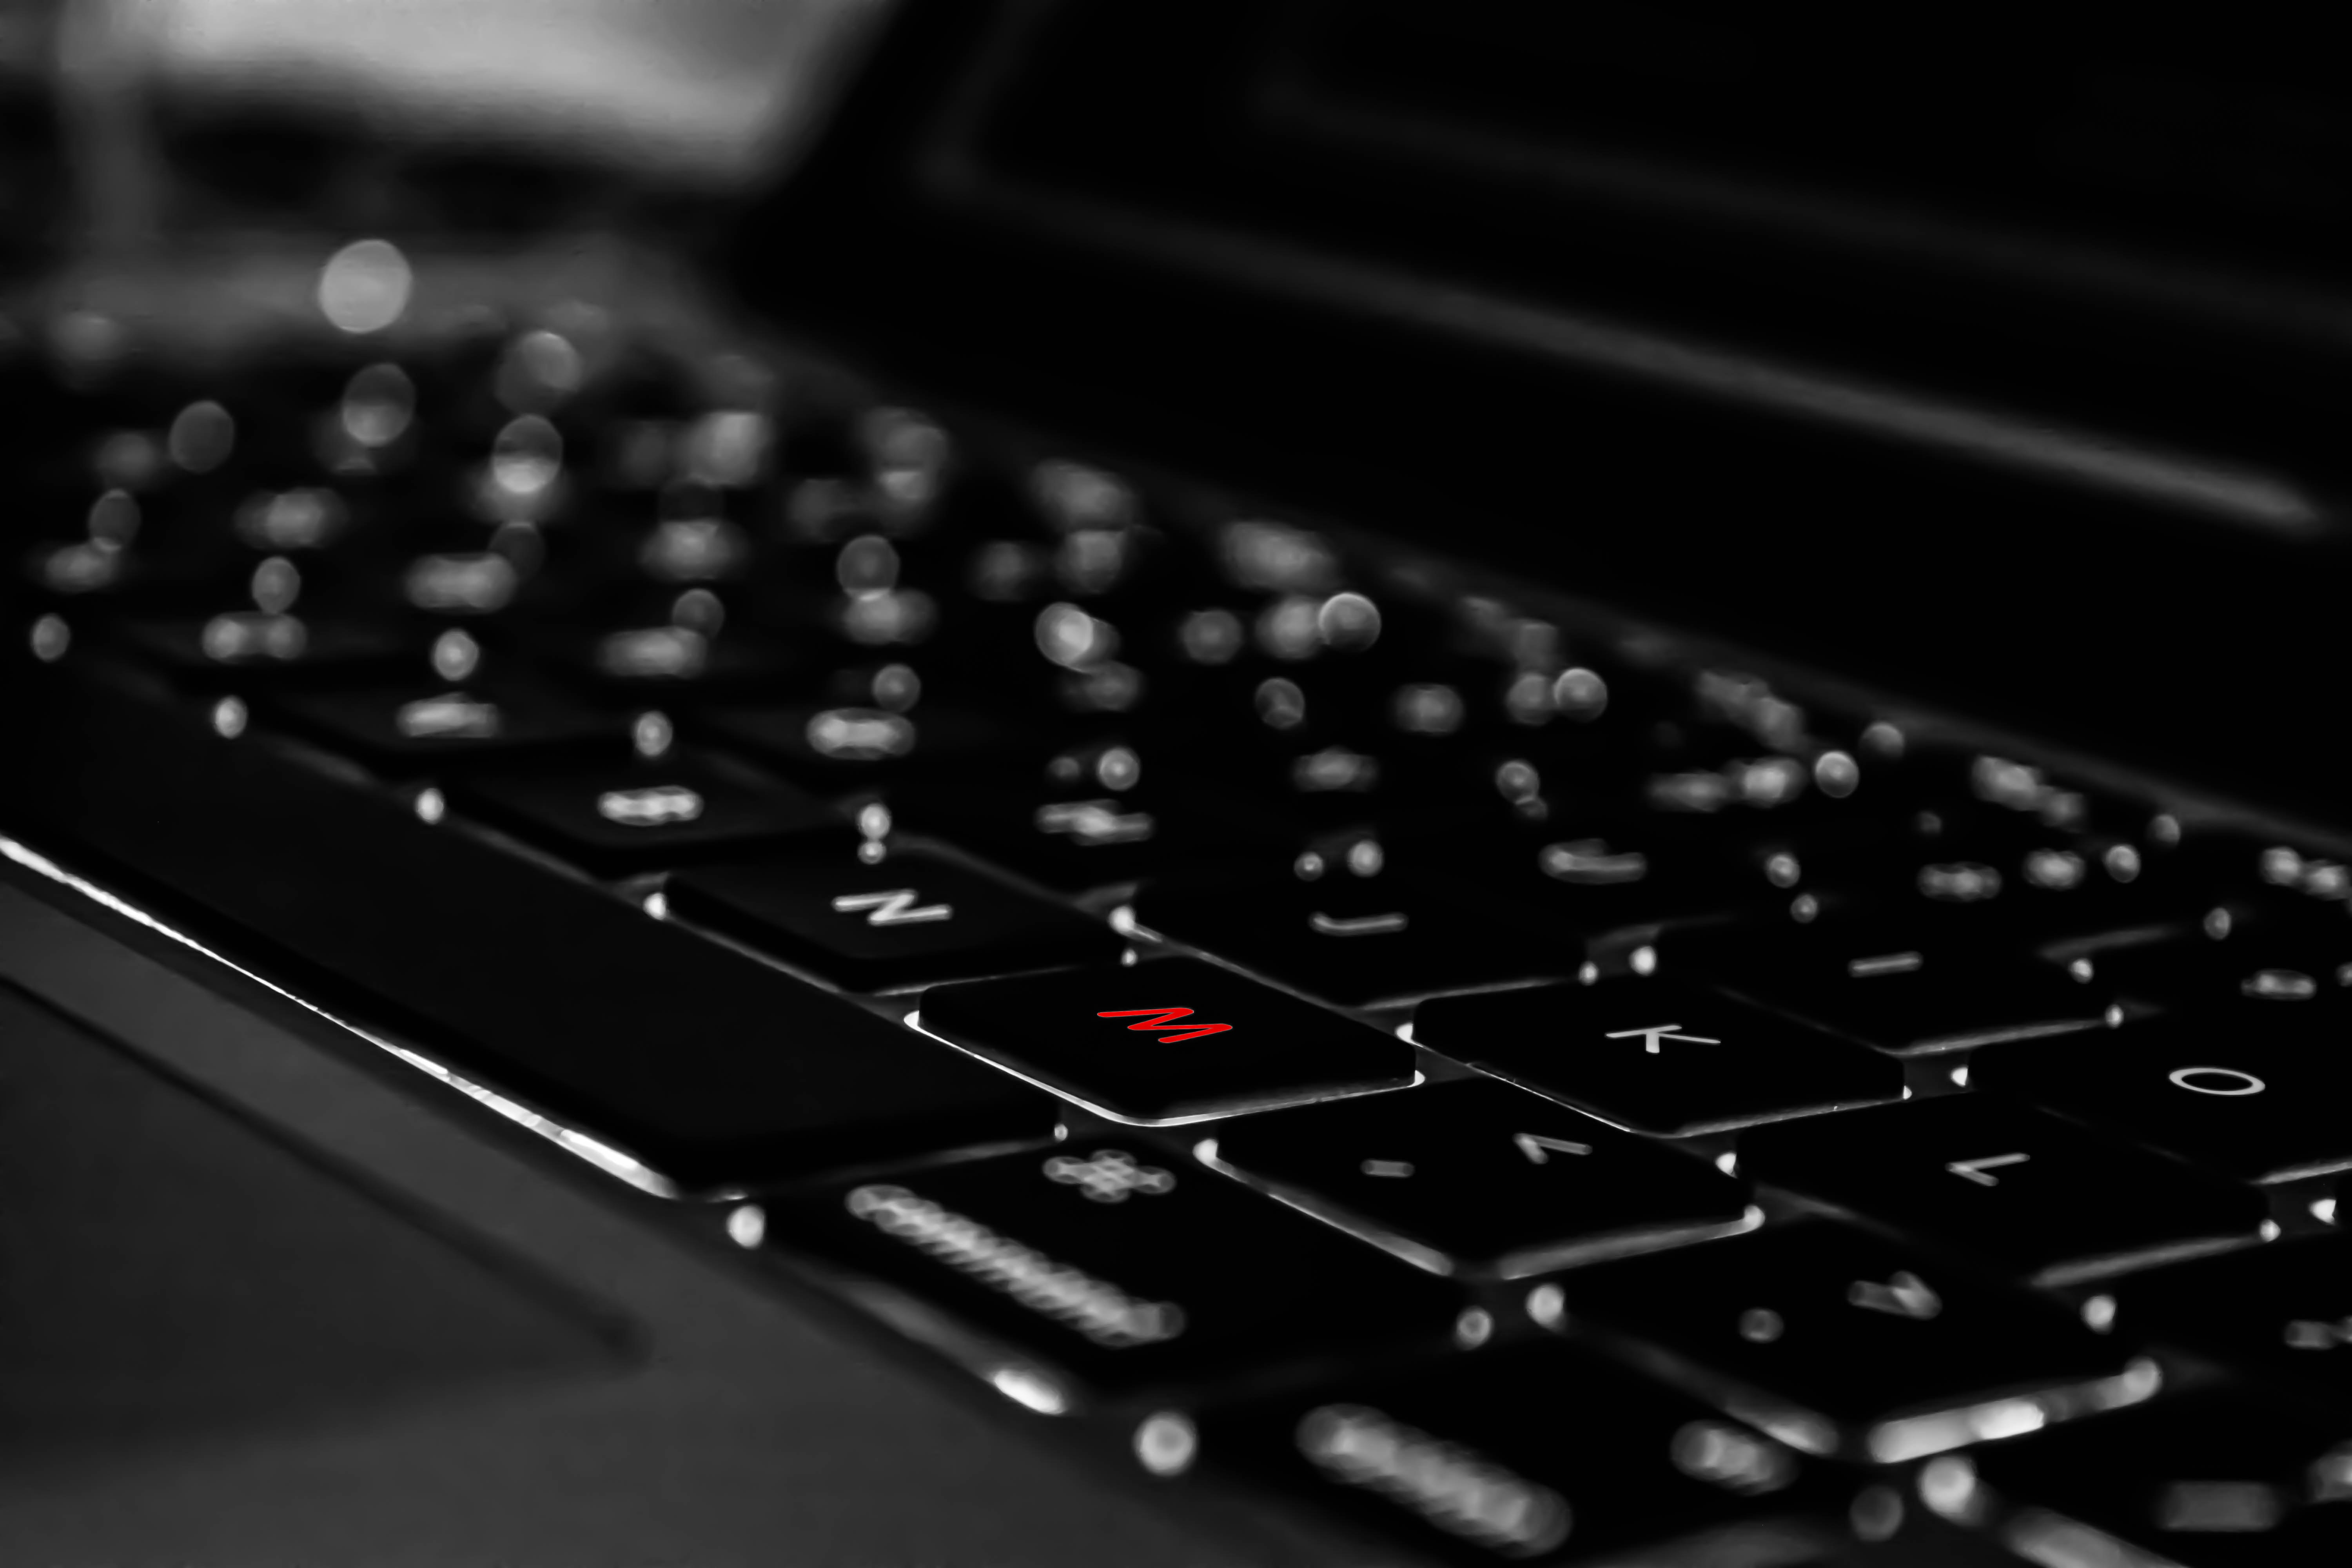 close-up photo of black laptop computer